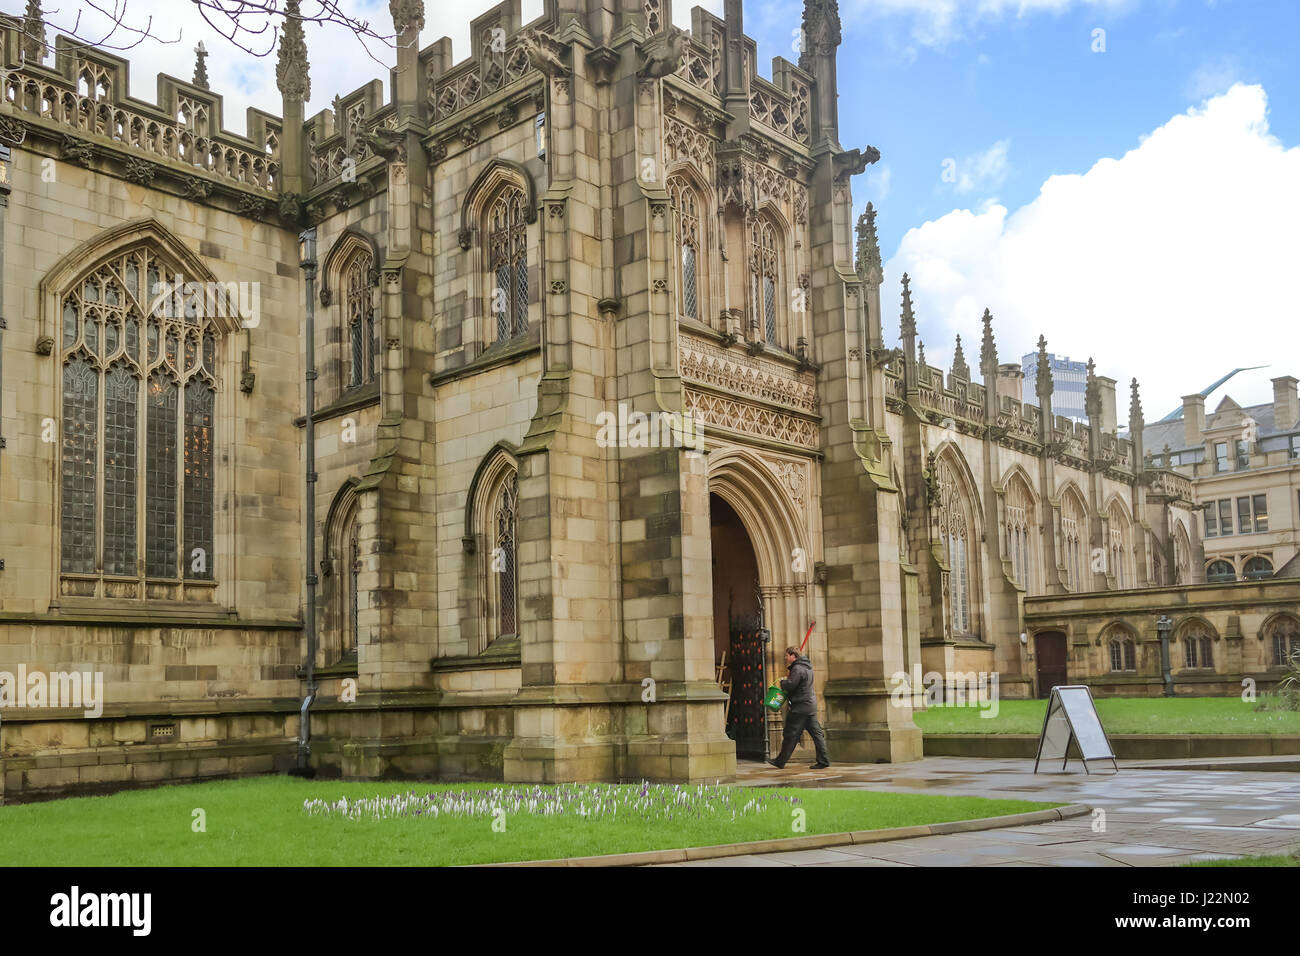 Exterior facade view of the famous medieval building of the cathedral of the city of Manchester in United Kingdom, - Stock Image